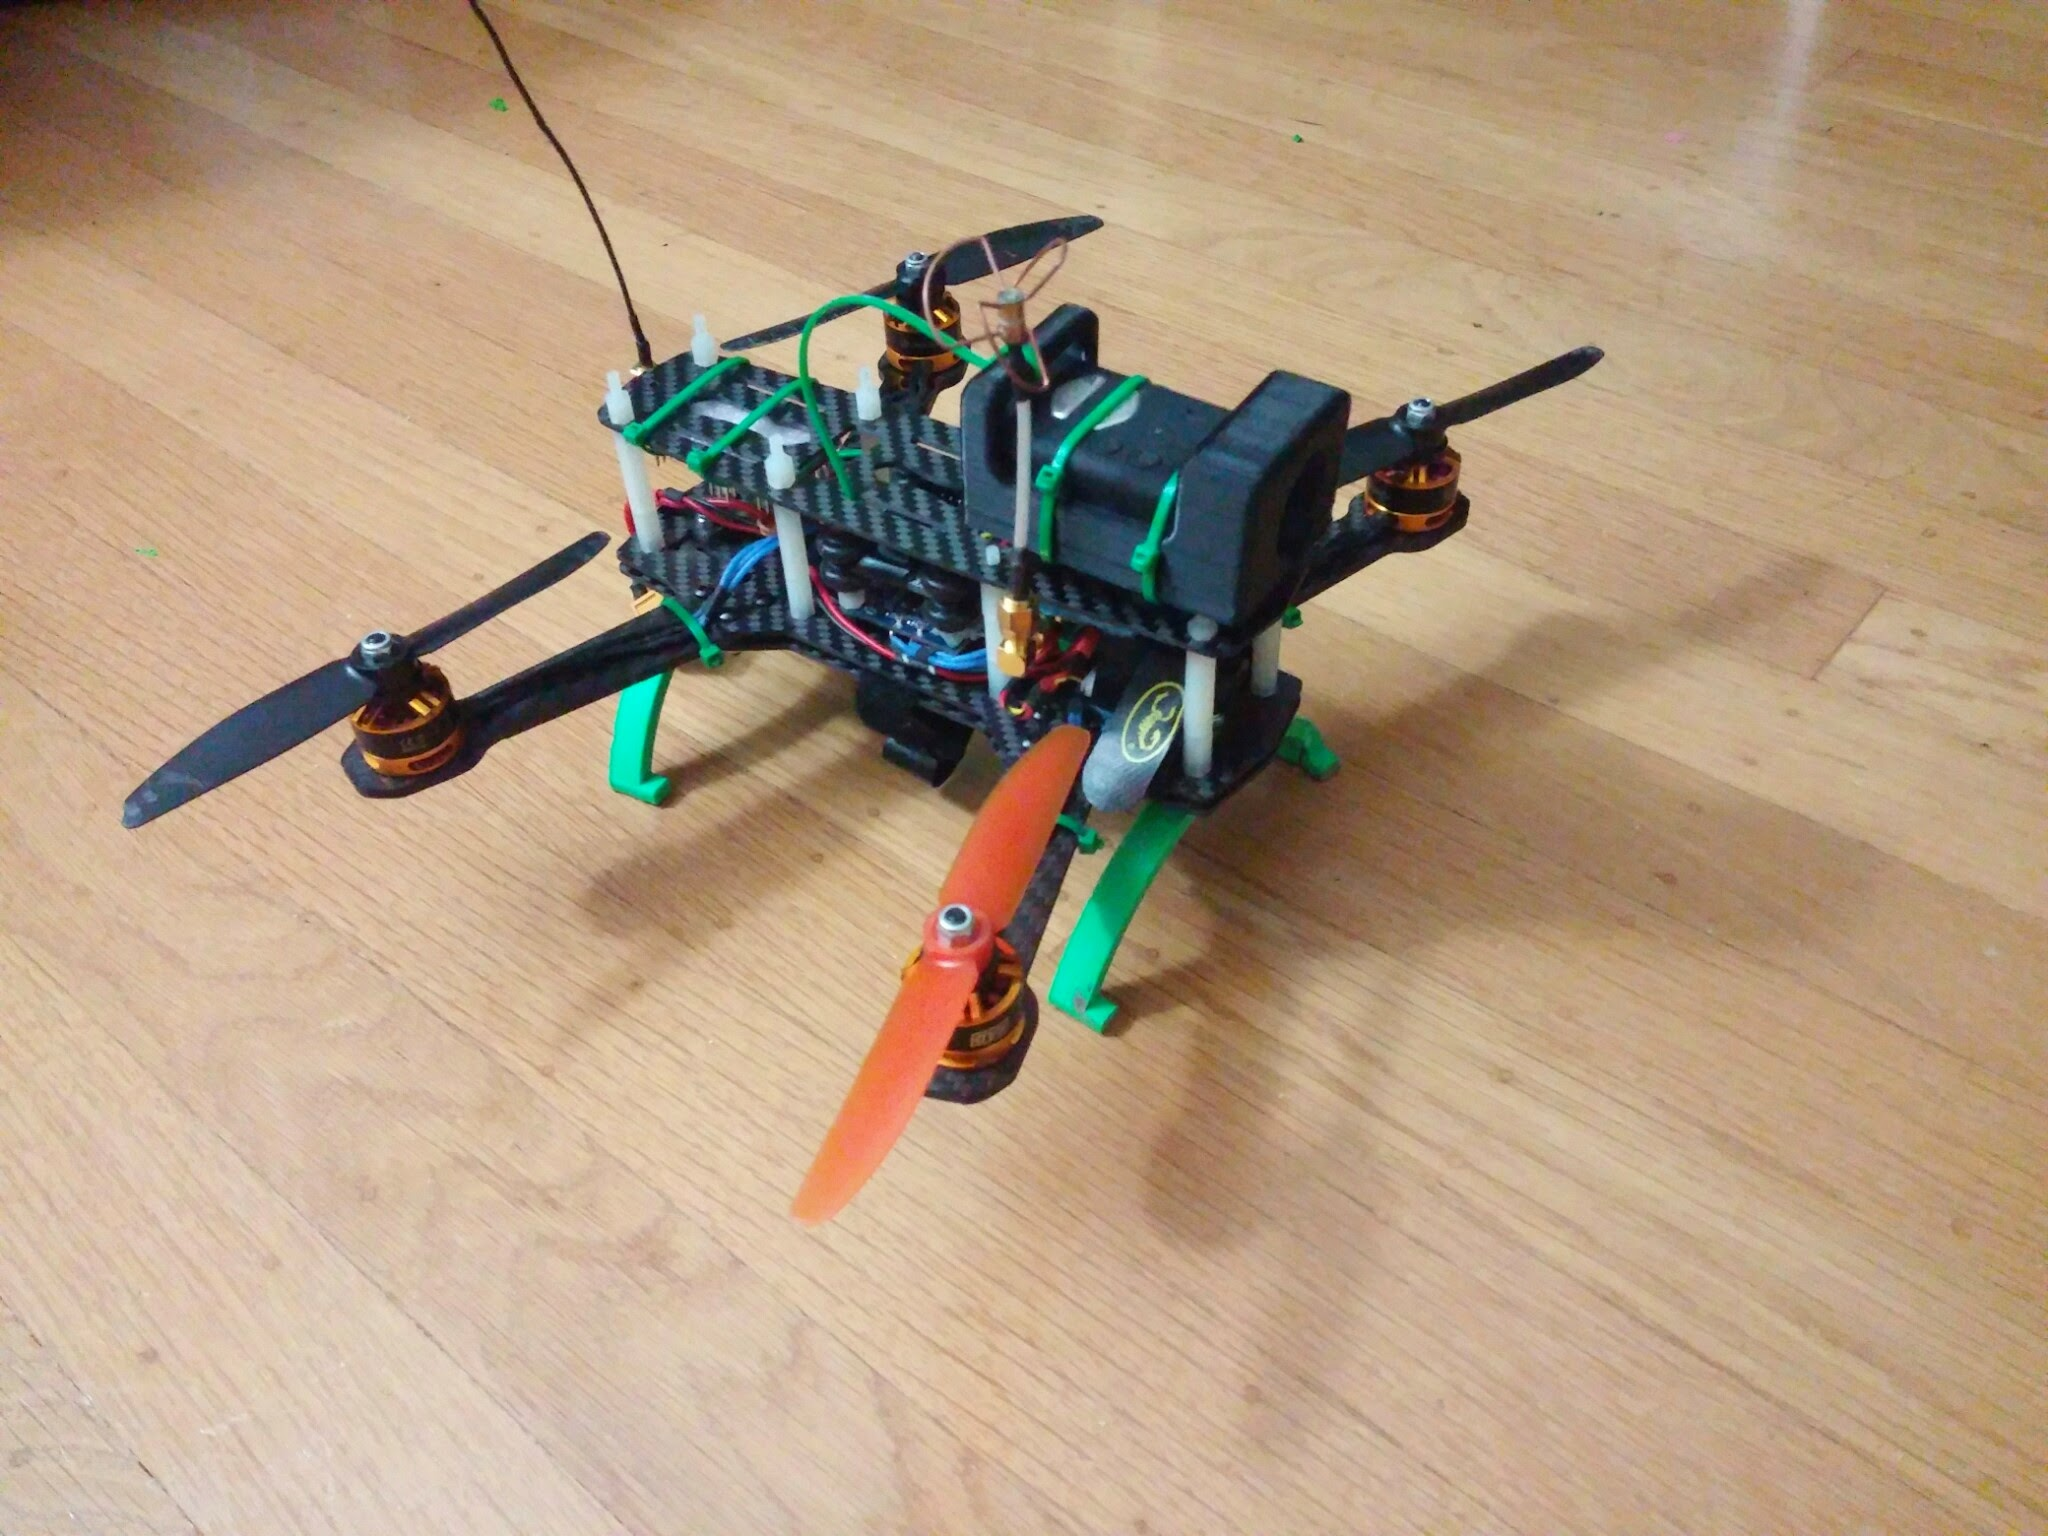 Build Your Own Quadcopter Beginner Guide - Robot Kingdom